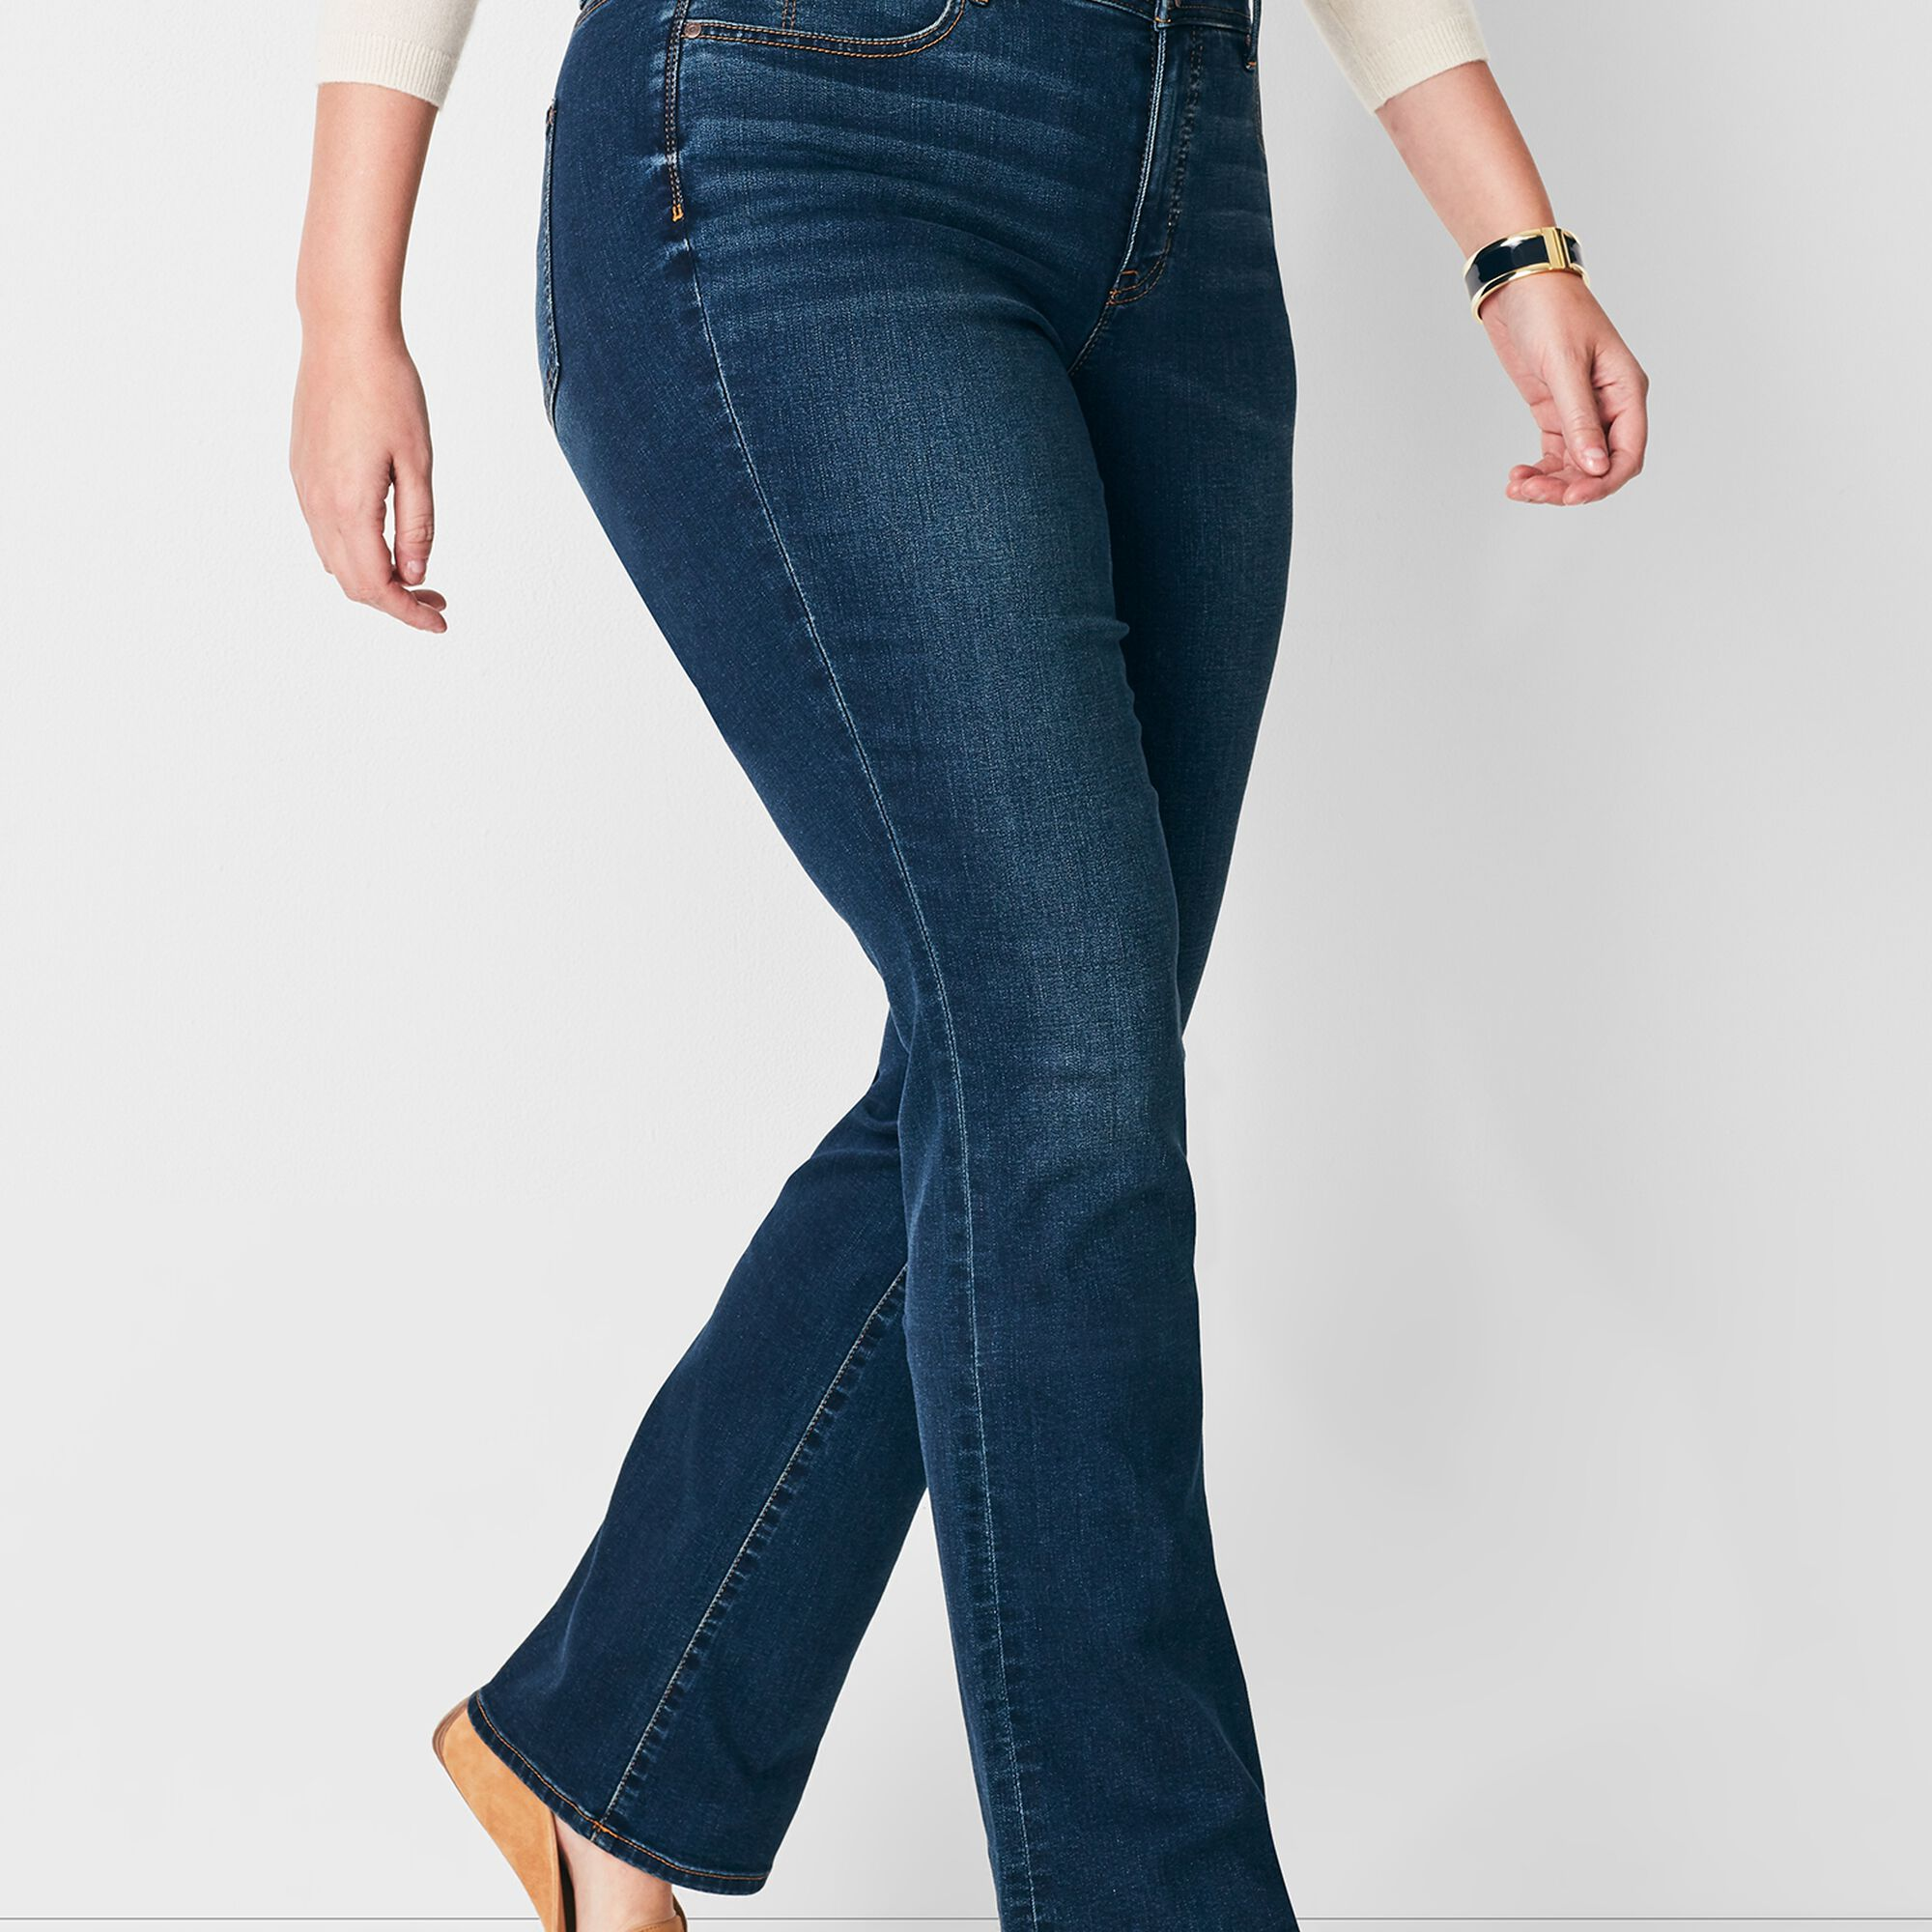 981ddee3679 Plus Size High-Waist Barely Boot Jeans - Pioneer Wash